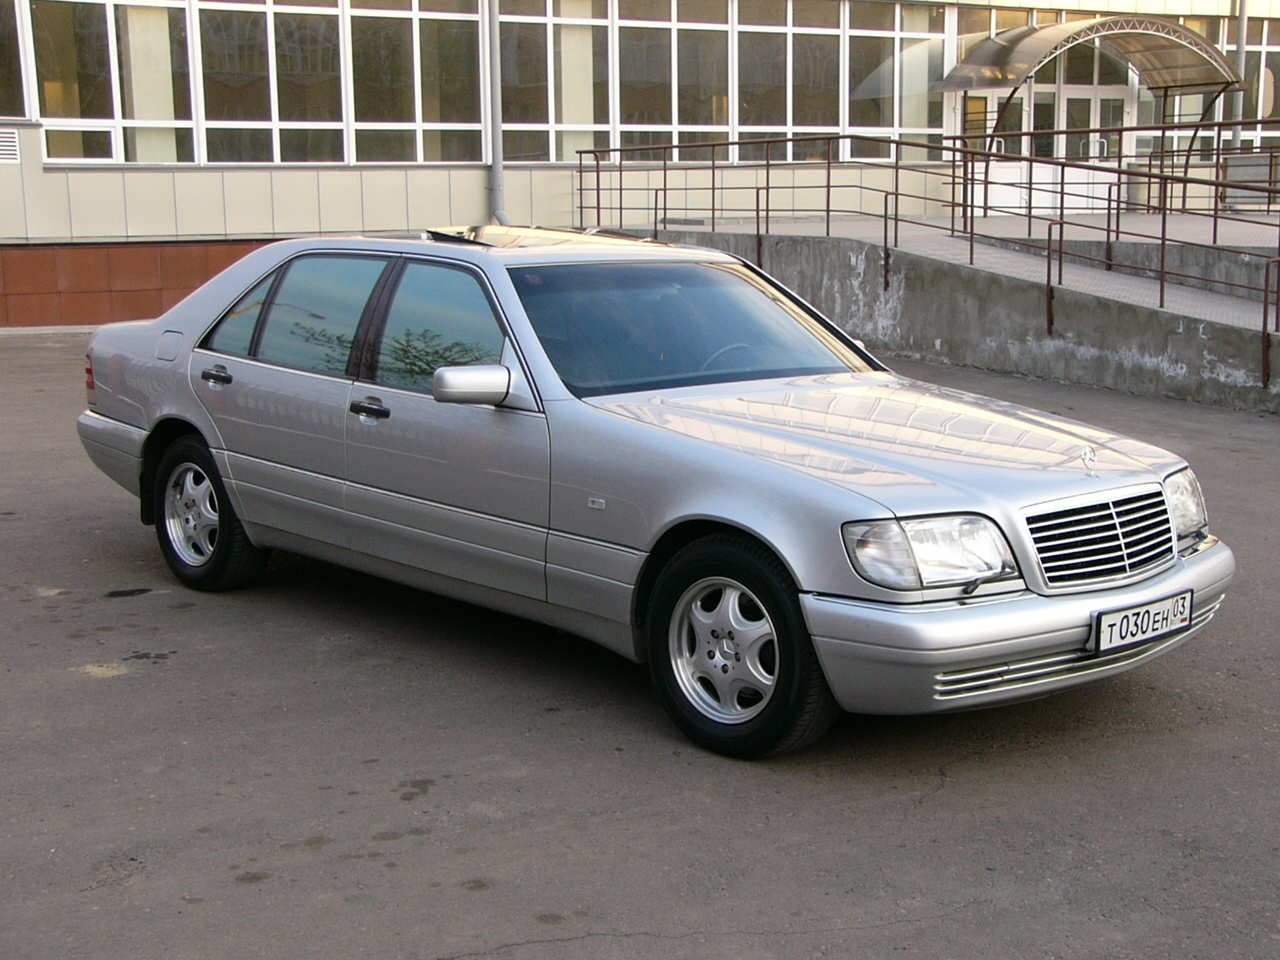 1996 mercedes benz s class pics 5 0 gasoline fr or rr for 1996 mercedes benz s500